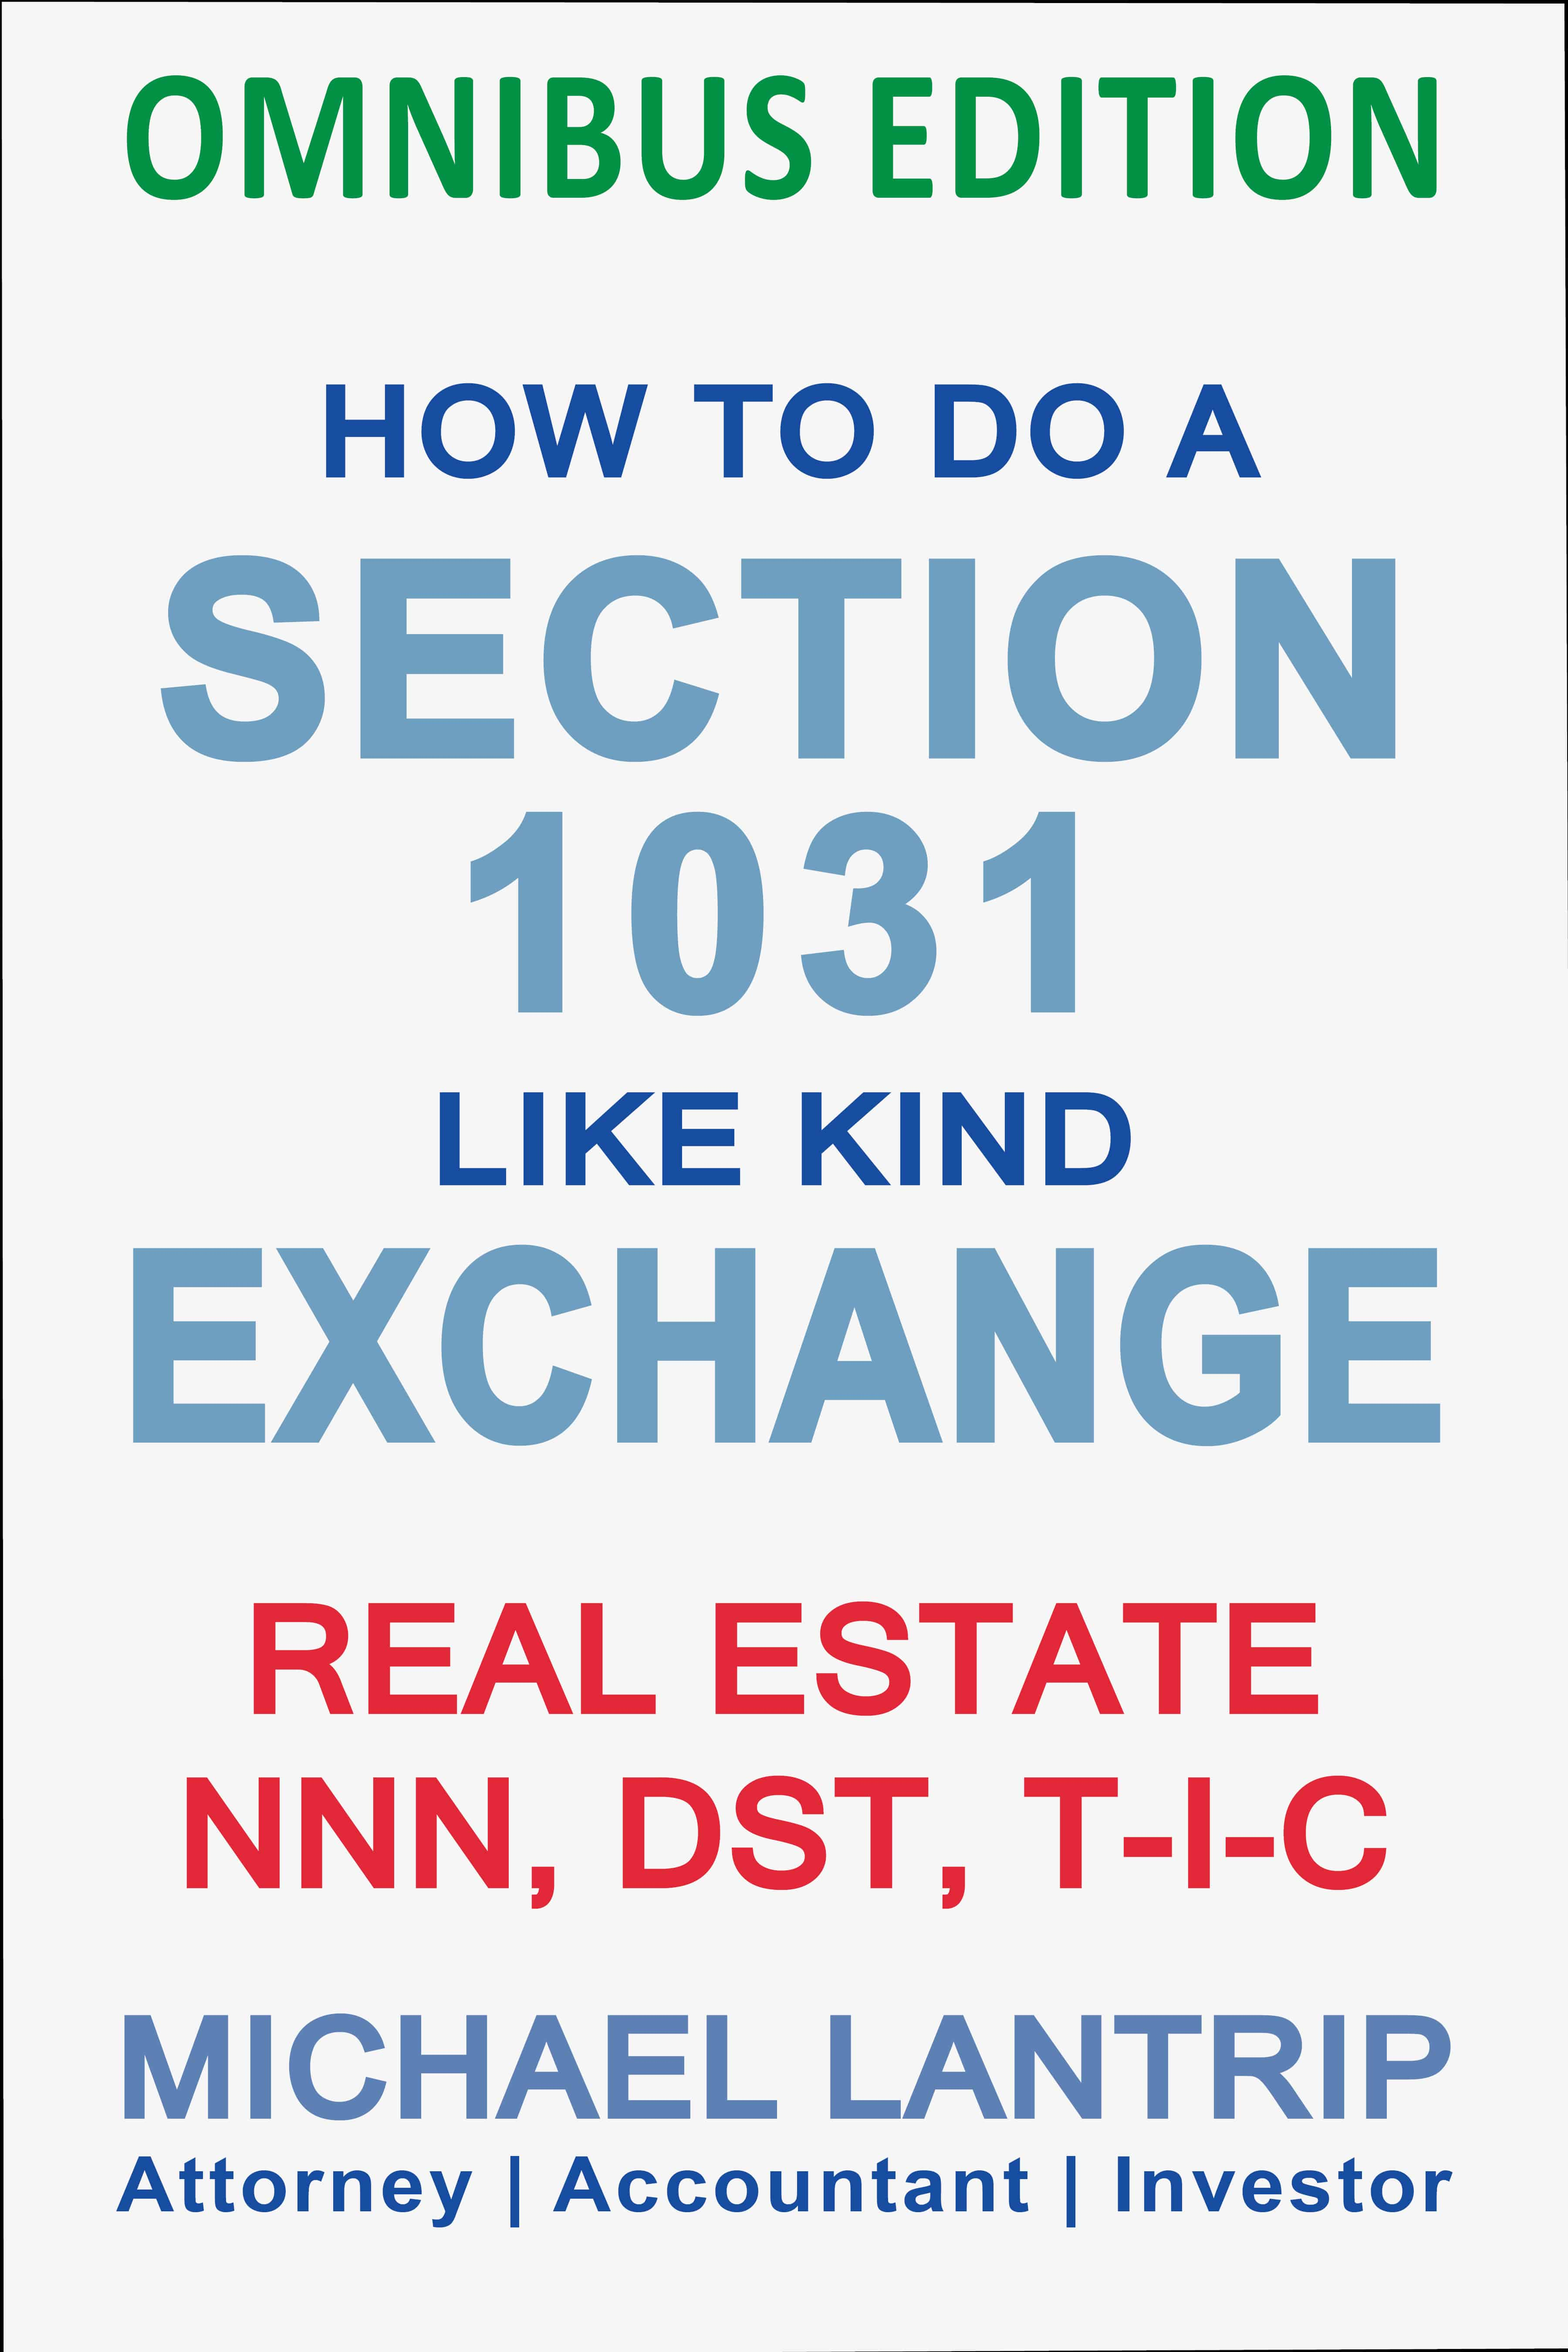 About How To Do A Section 1031 Like Kind Exchange | Michael Lantrip